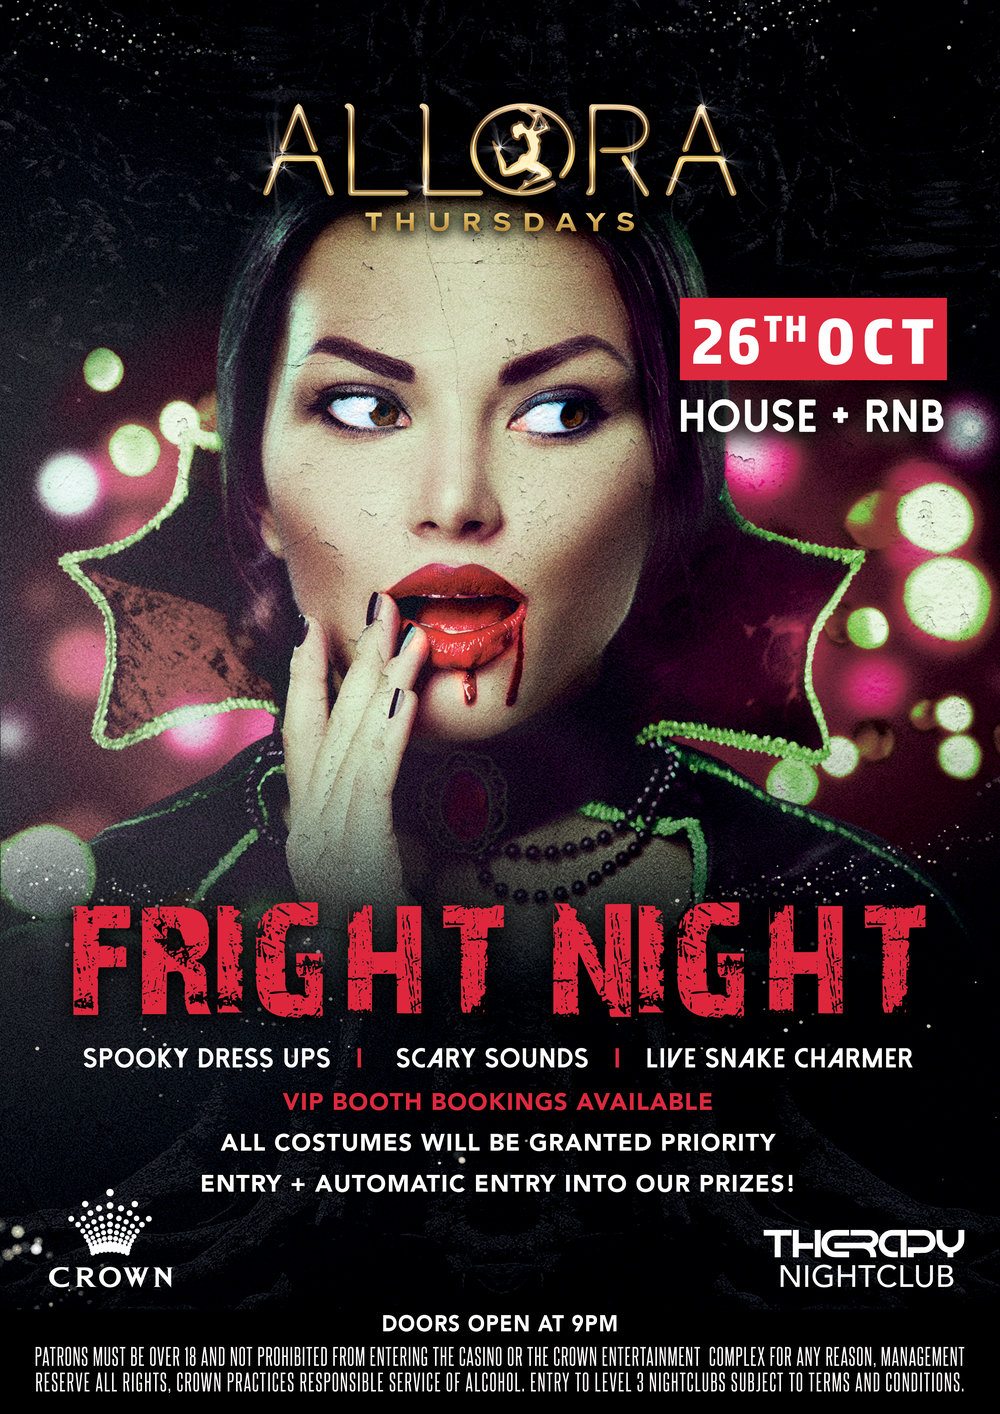 171026-Crown-Melbourne-Nightclubs-Therapy-Allora-Frightnight-FacebookFlyer.jpg